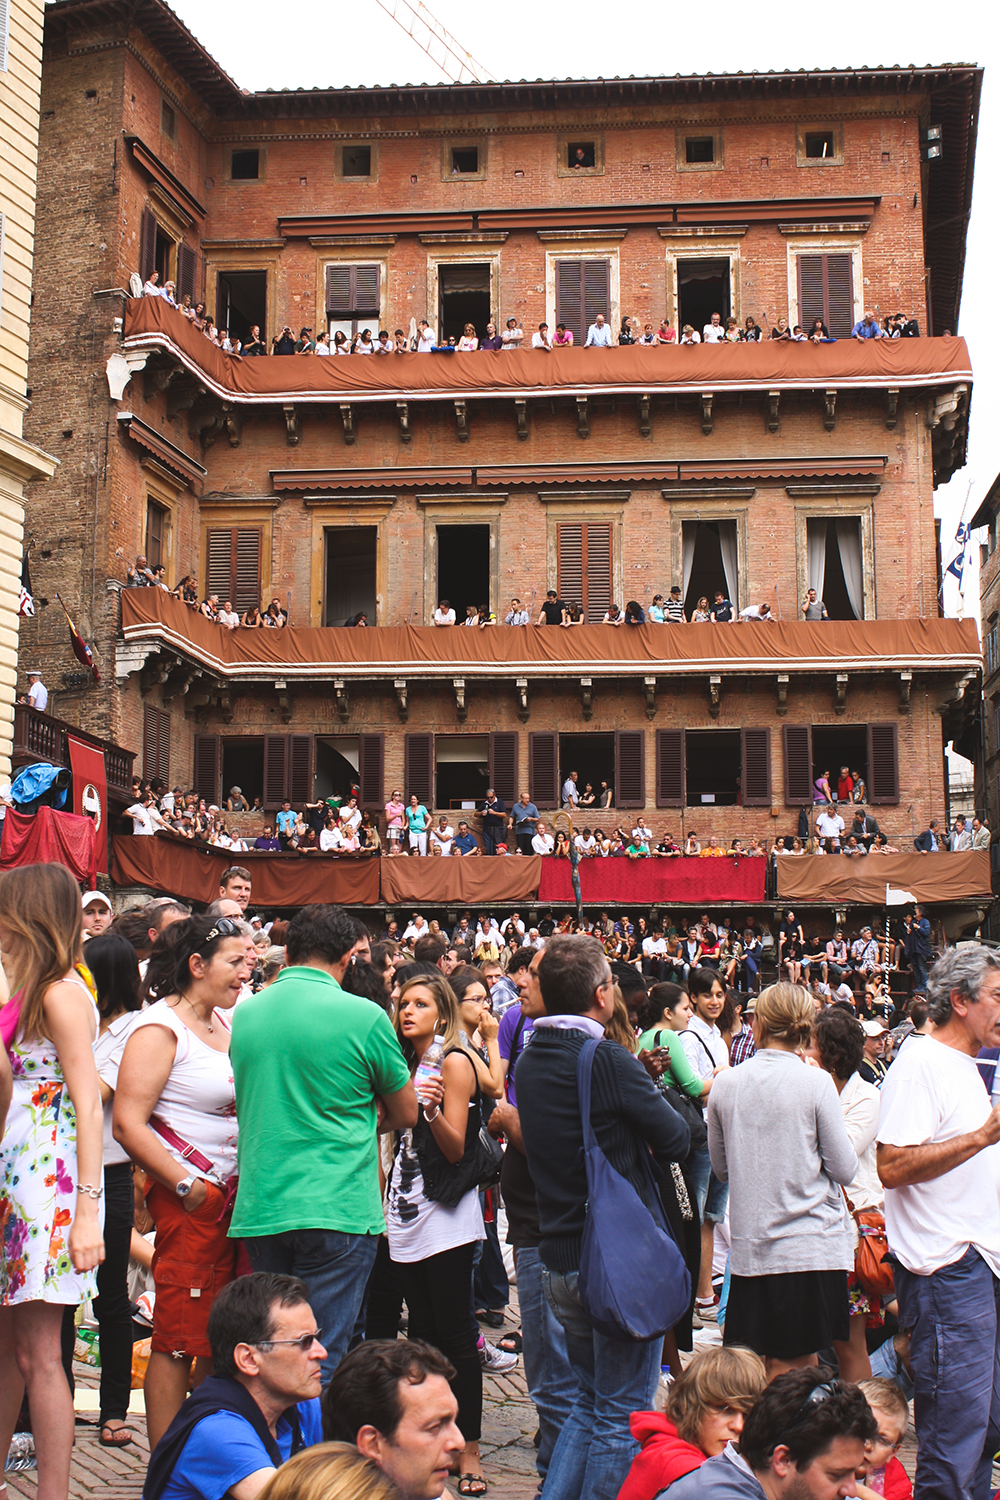 SamiM Adventures Palio horse race in Siena, Italy